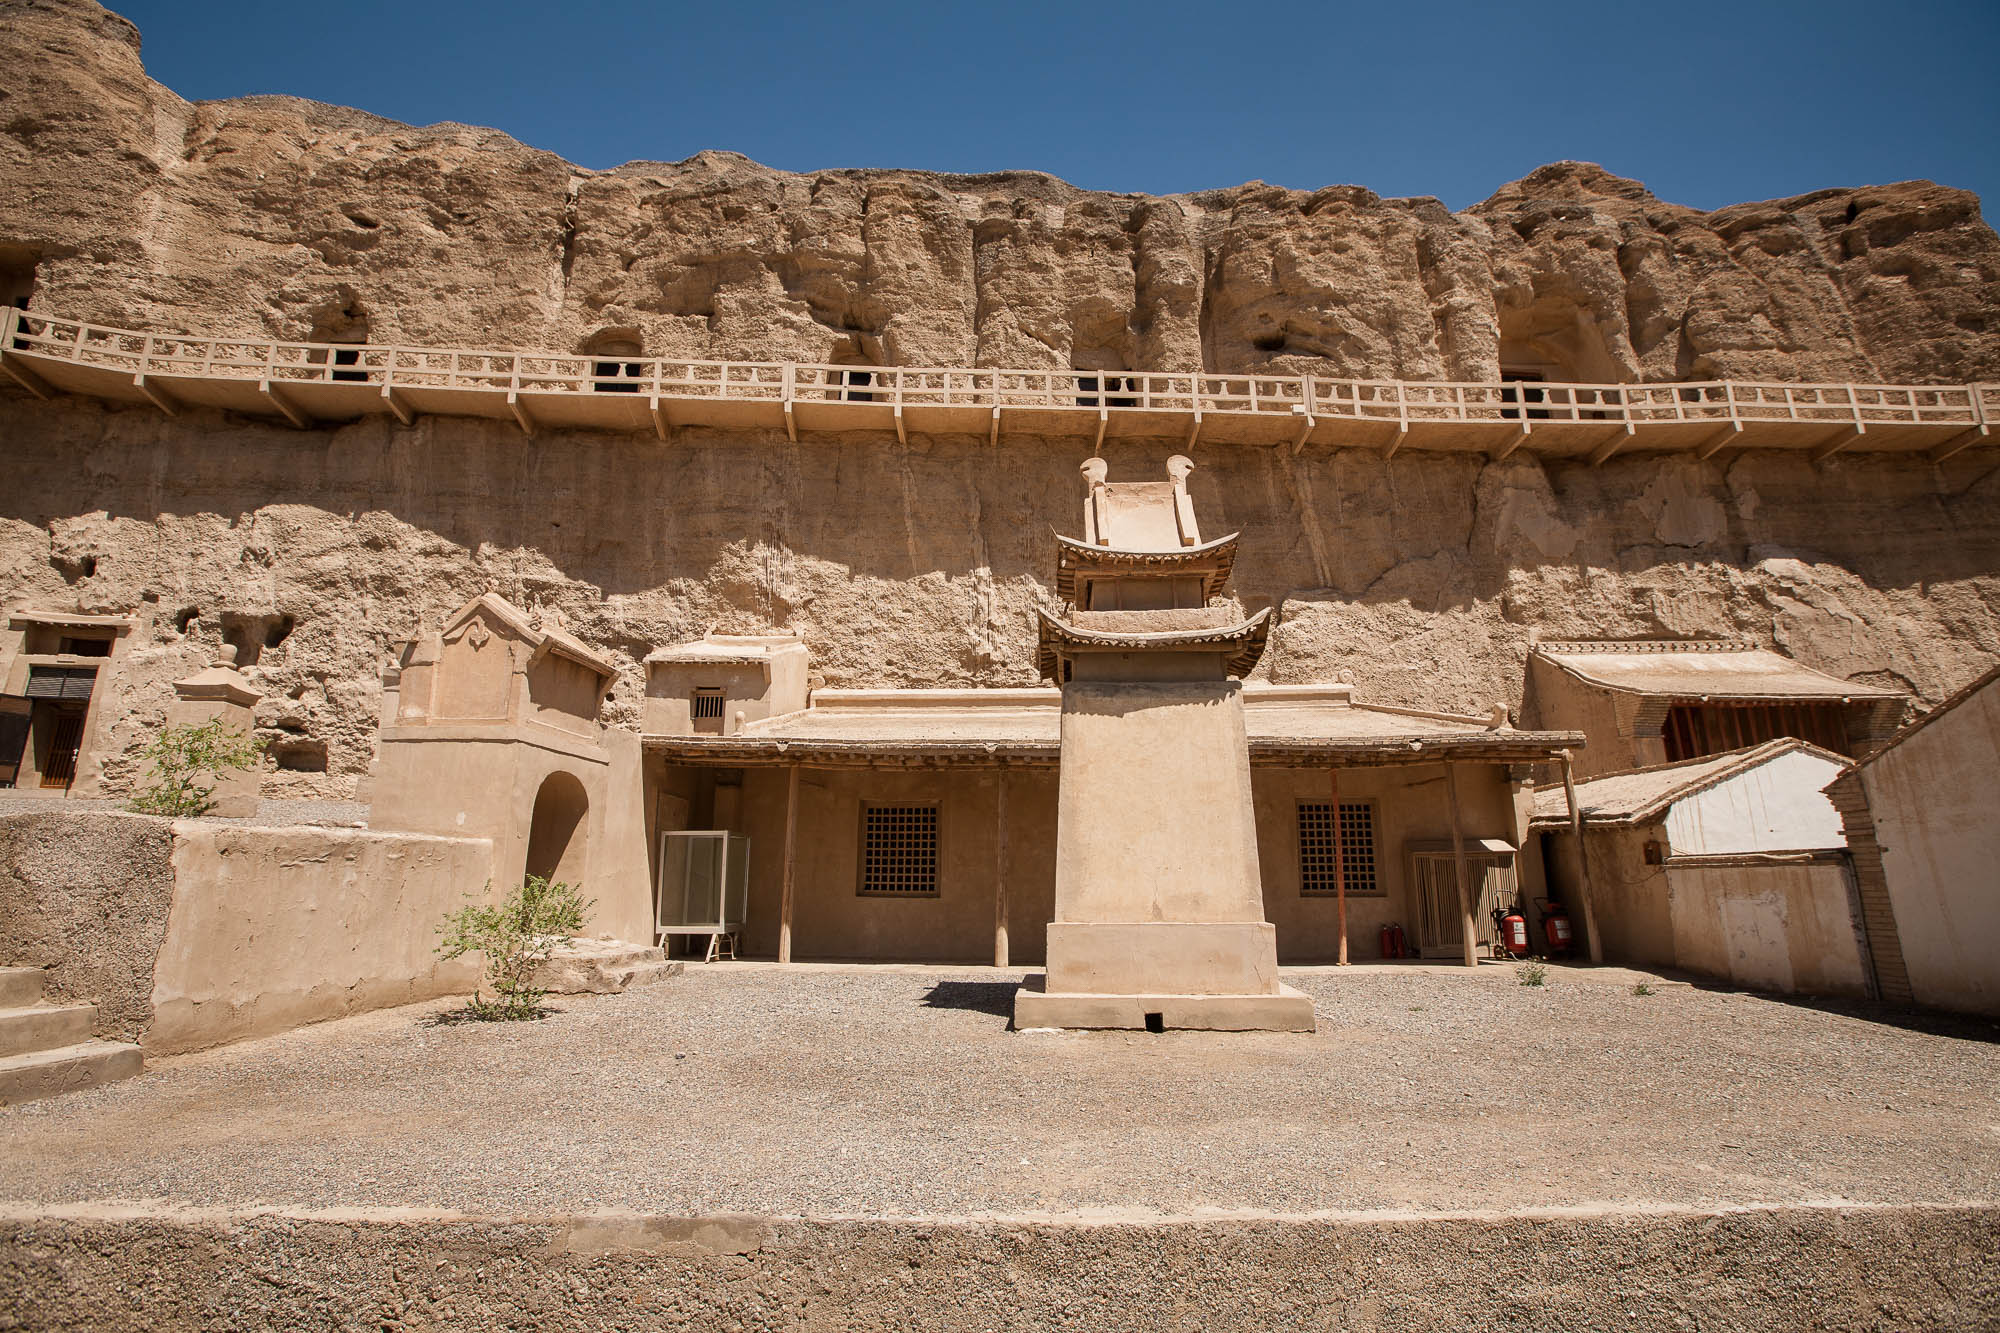 structures at the Yulin Grottoes